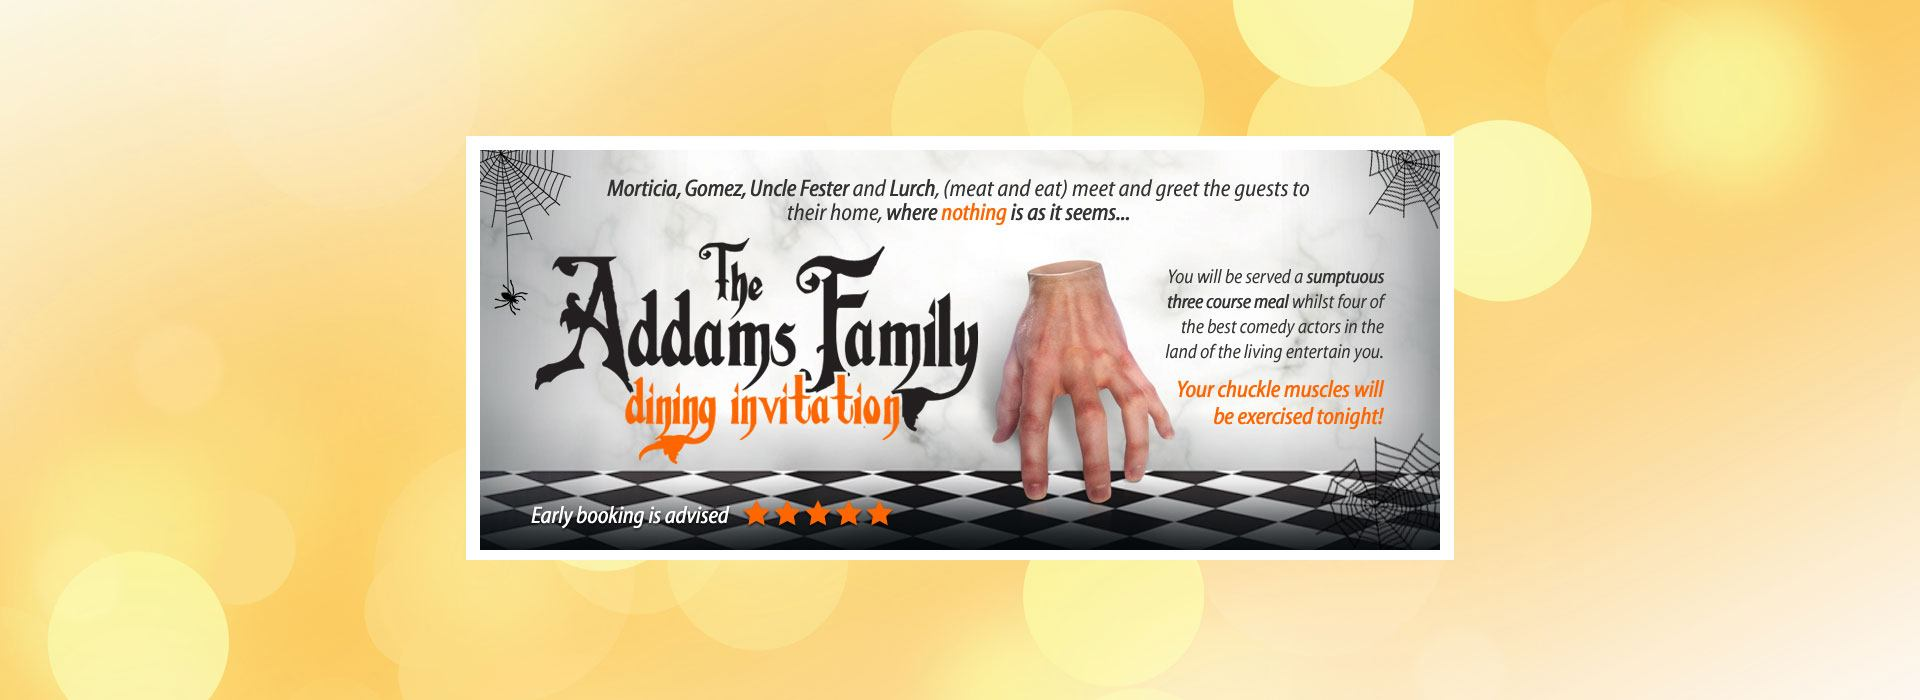 The Adams Family from Comedy Dining